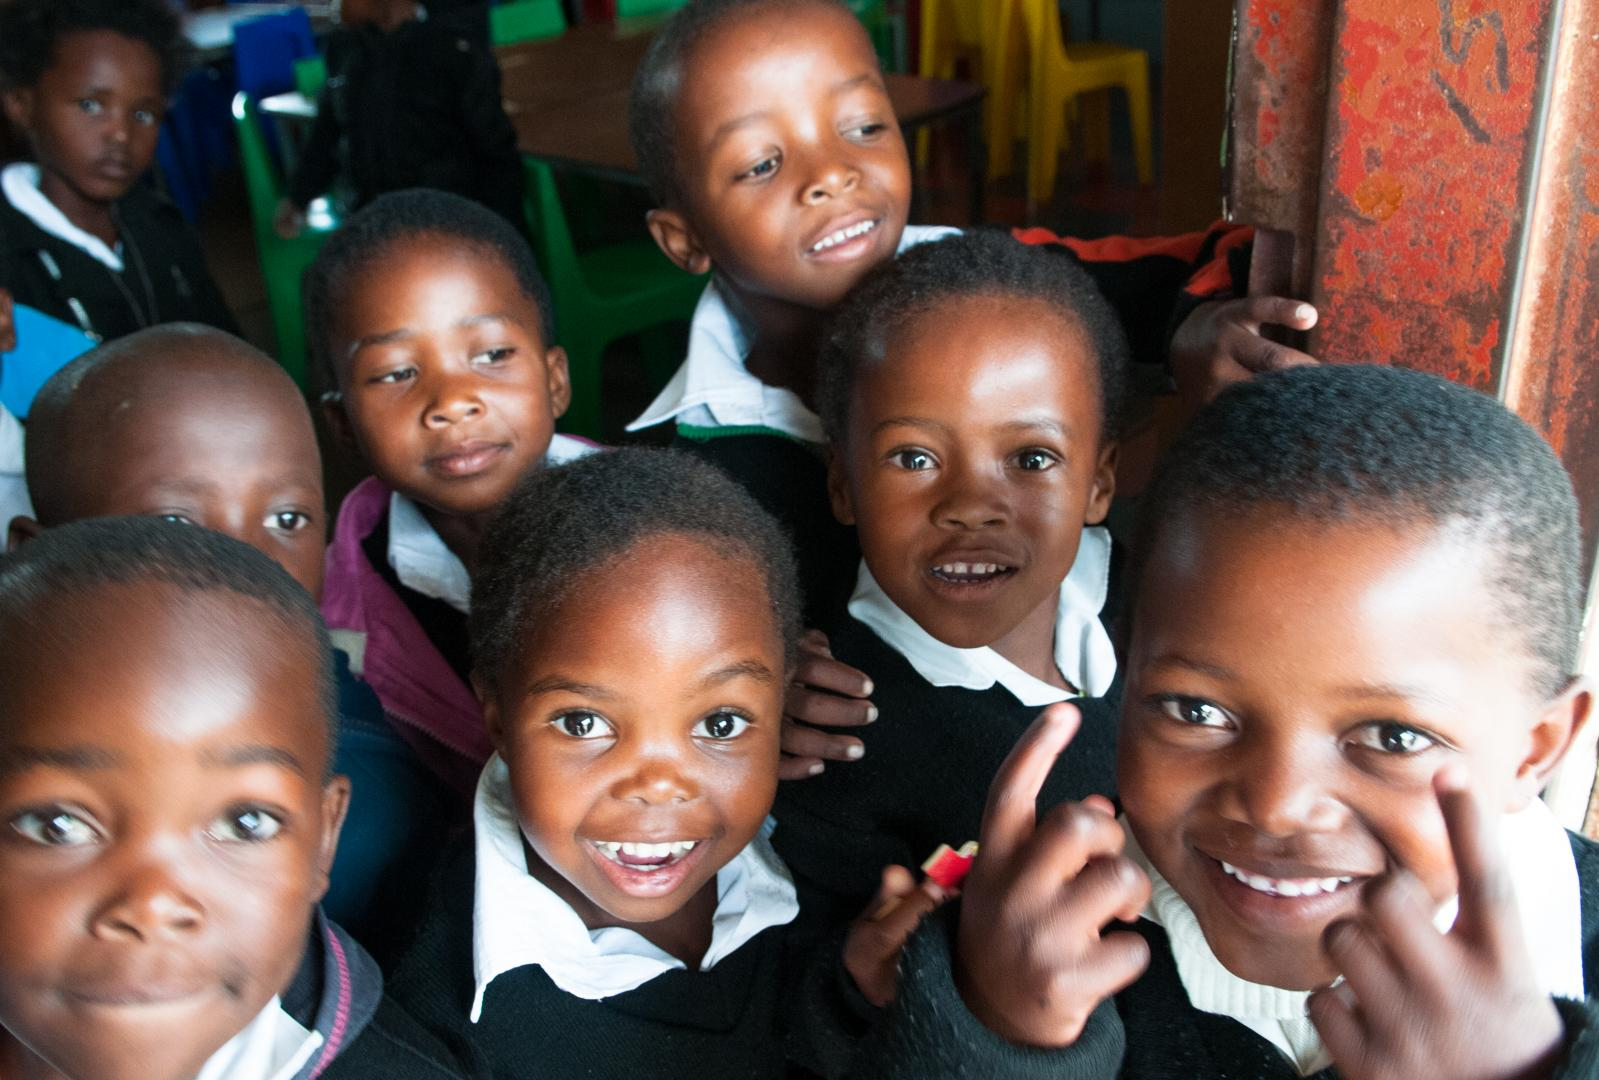 Zenande, 5 years old (in the middle), and her classmates have just finished a grade 0 class in the Gwebinkunda Primary School situated in the rural part of Eastern Cape, South Africa